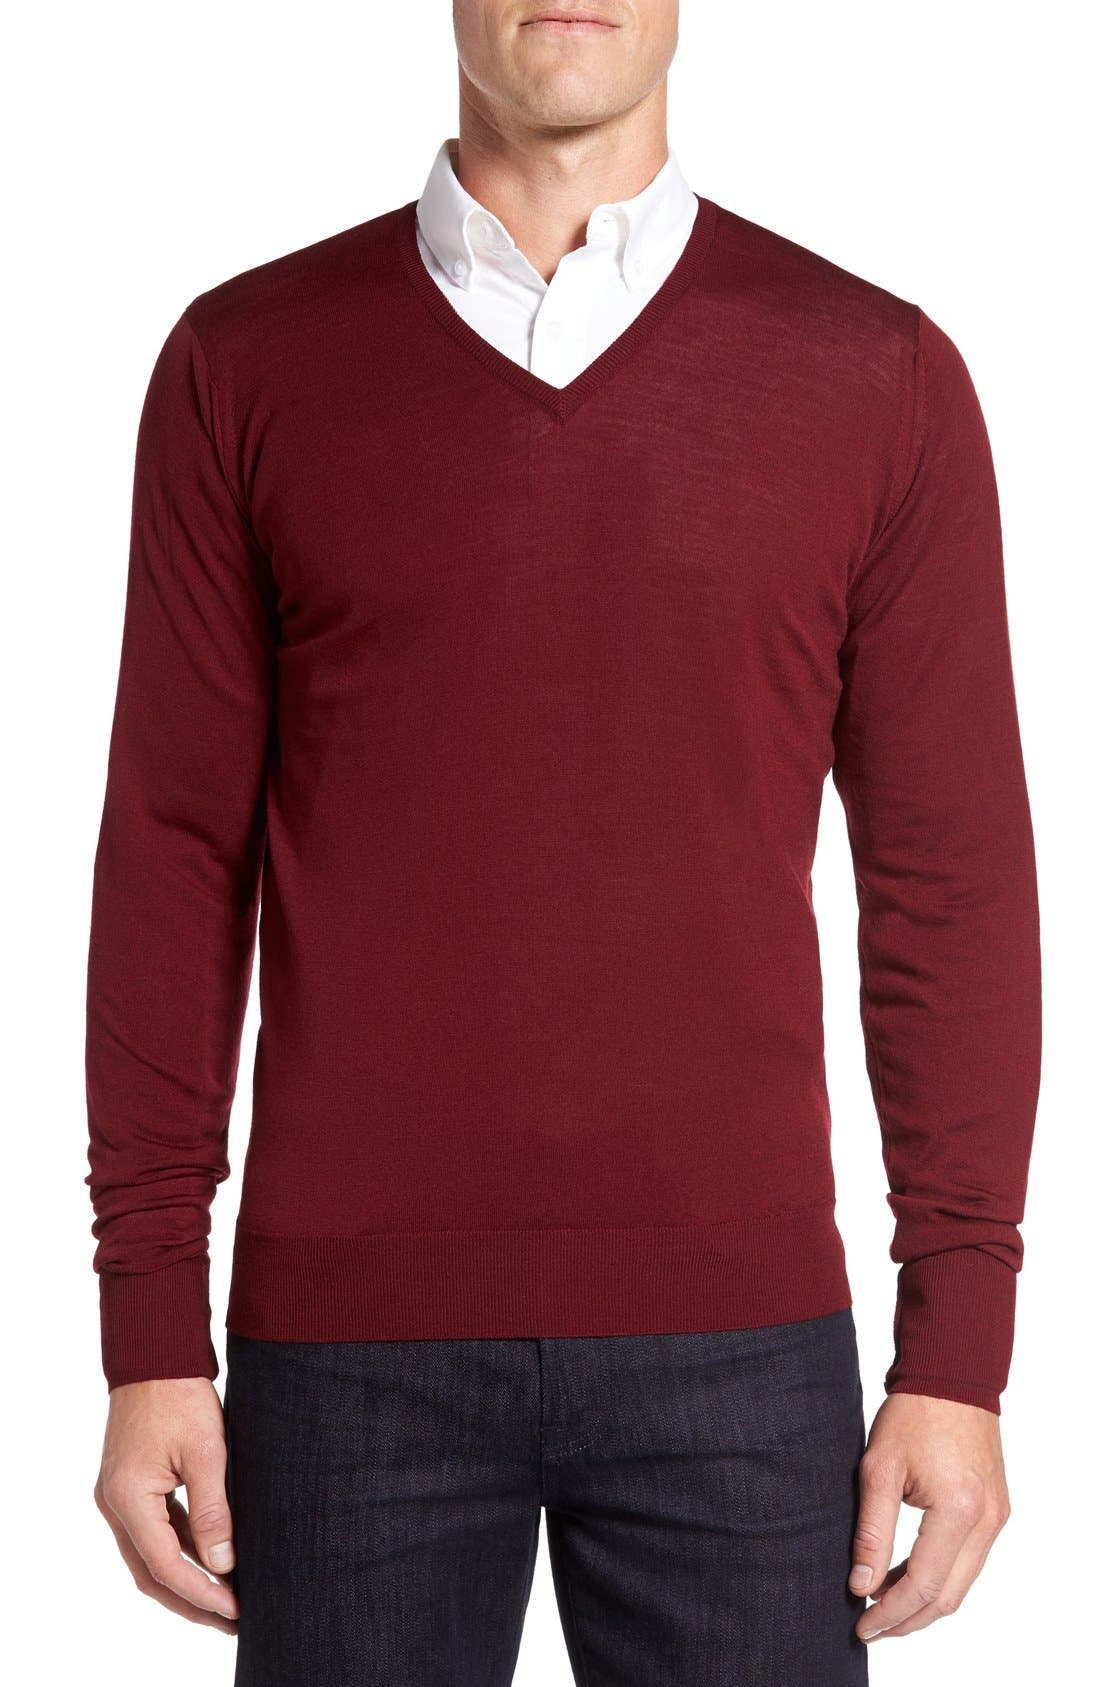 Main Image - John Smedley 'Bobby' Easy Fit V Neck Wool Sweater